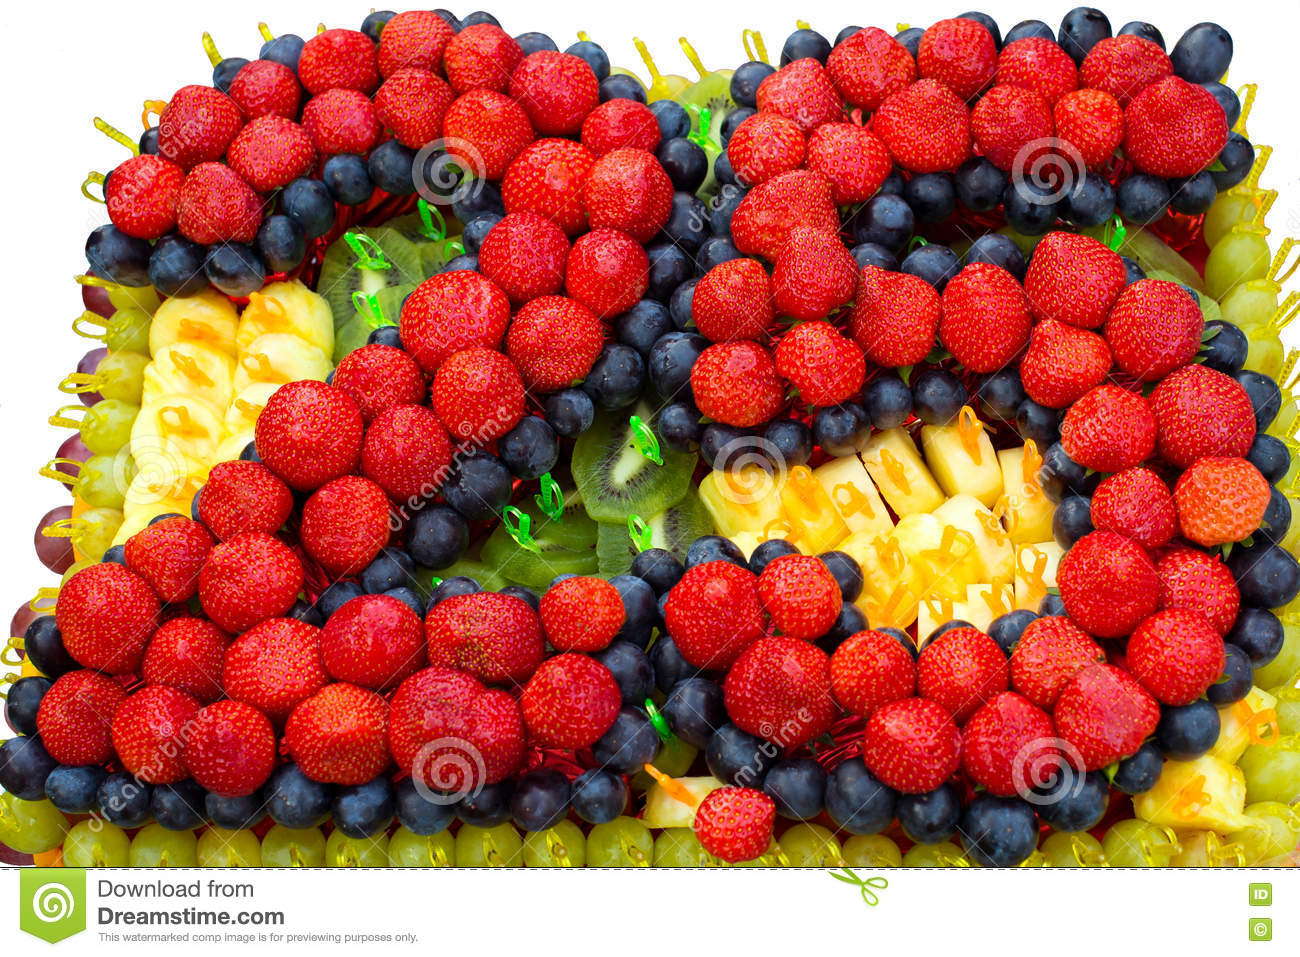 Cake With Fruits 25 Years The Jubilee Design Of And Berries Fruit Festive Dessert For Birthday Anniversary